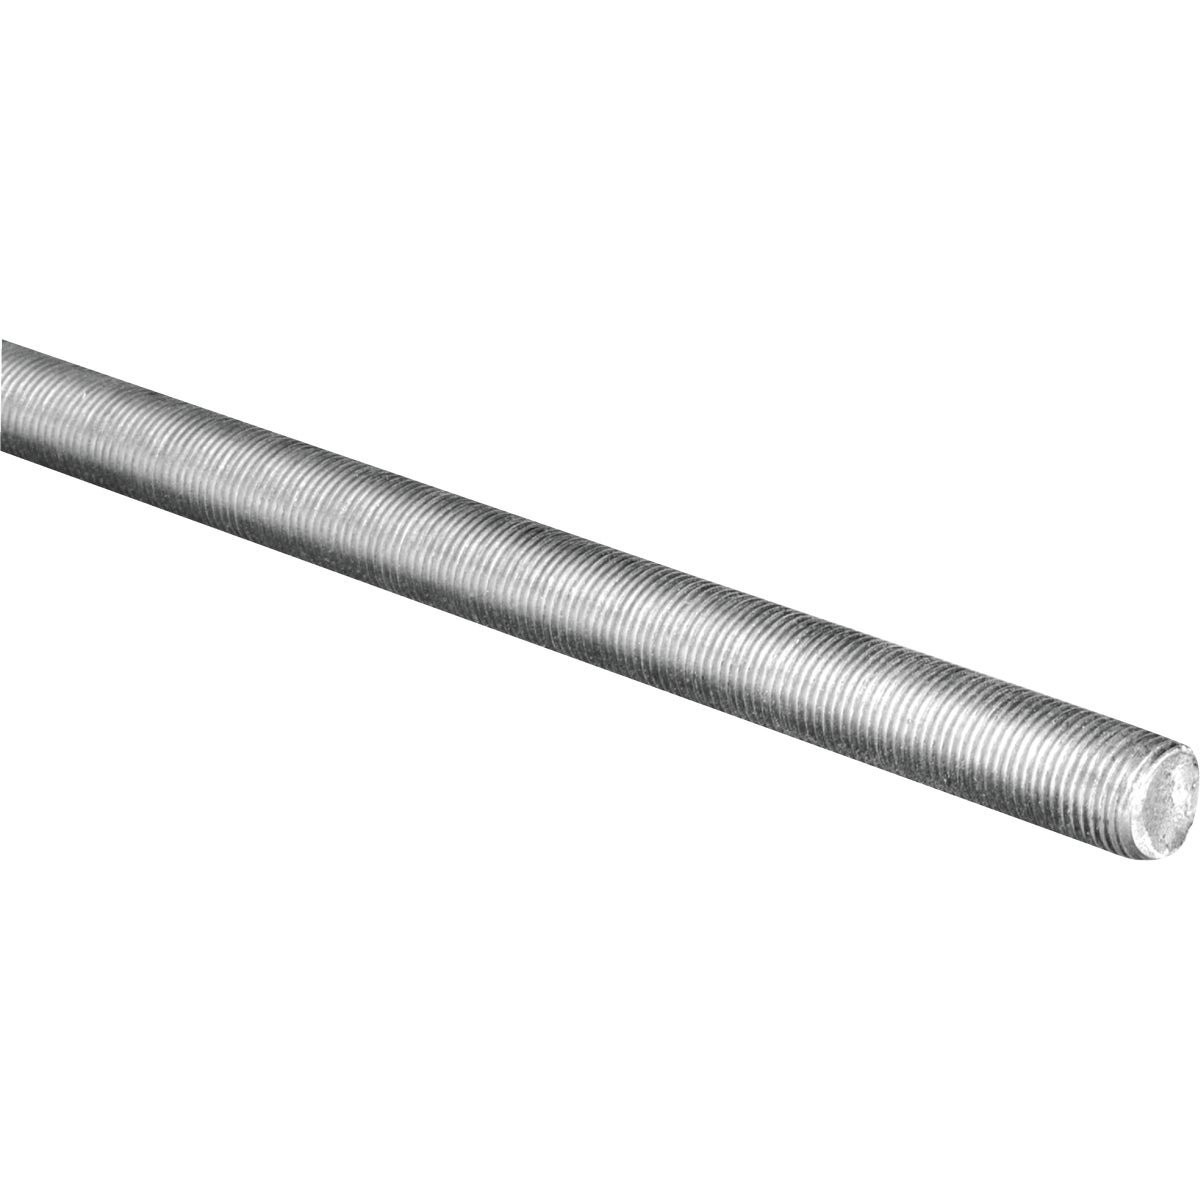 5/16-24X3' THREADED ROD - N218289 by National Mfg Co